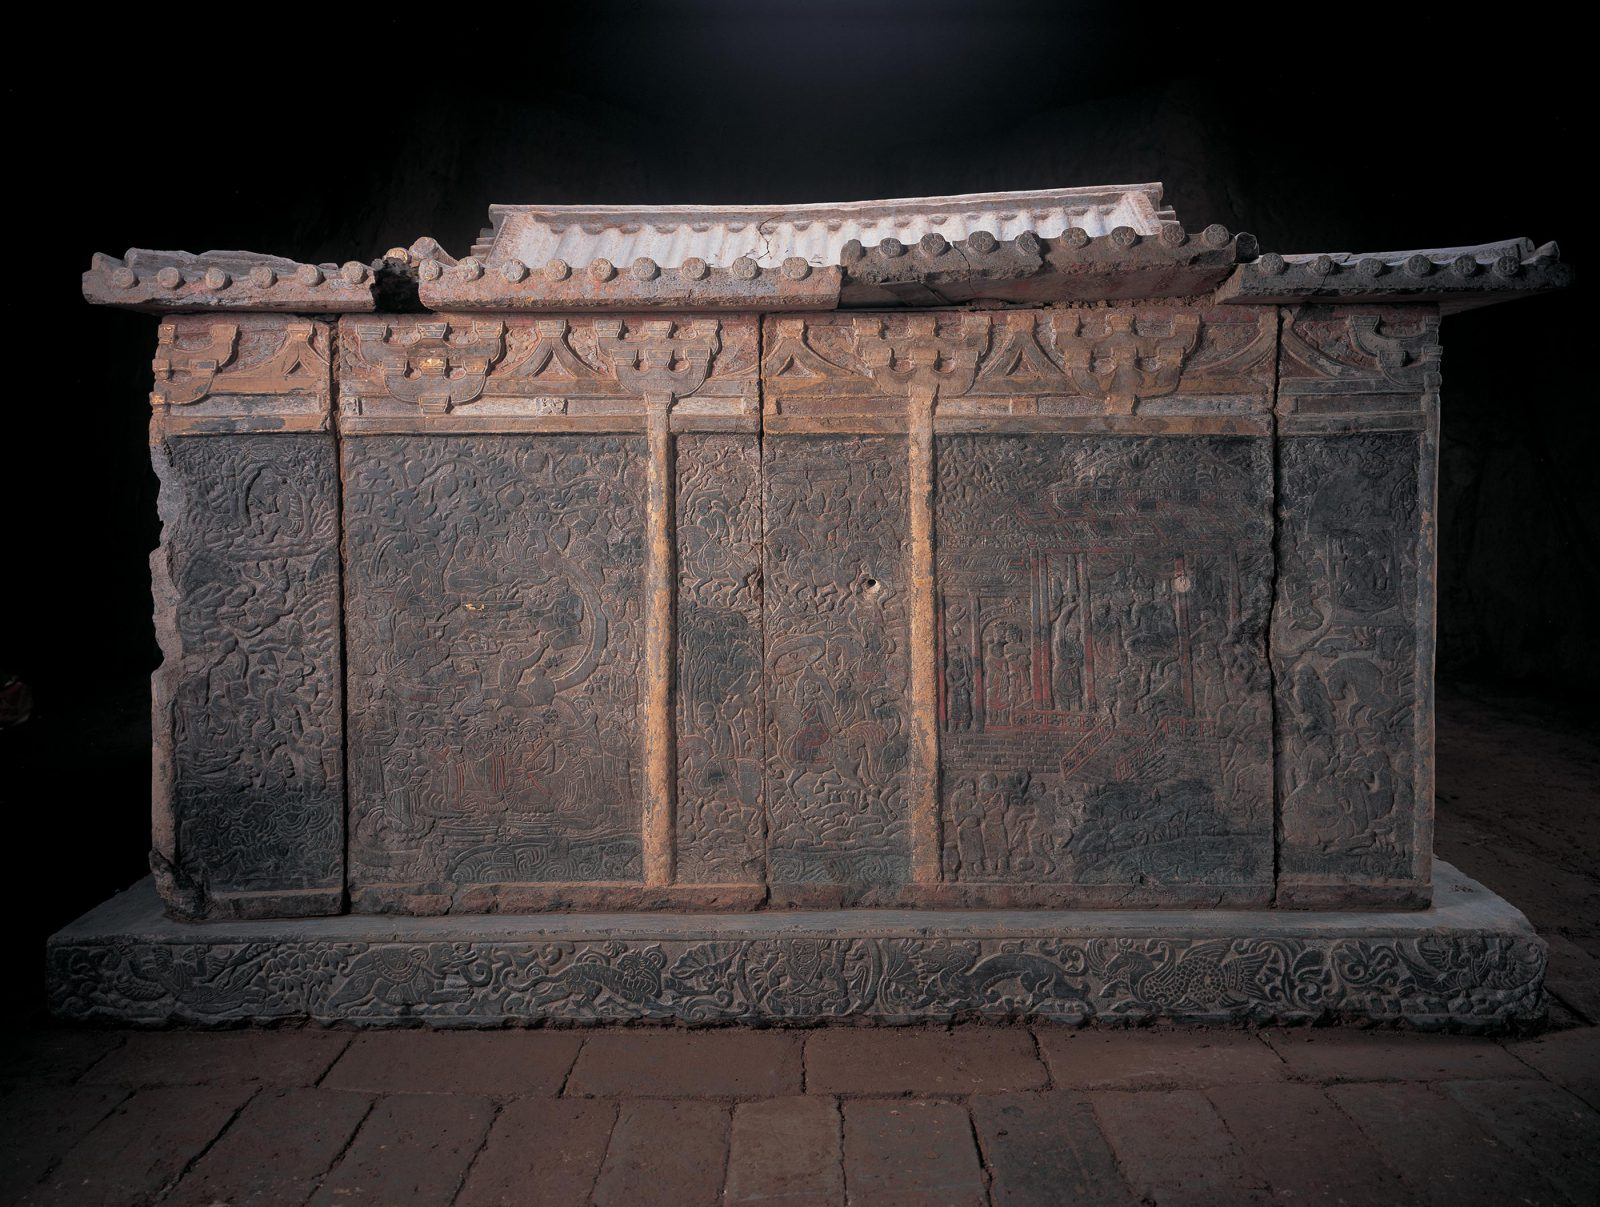 Back of sarcophagus with carved scenes of heaven